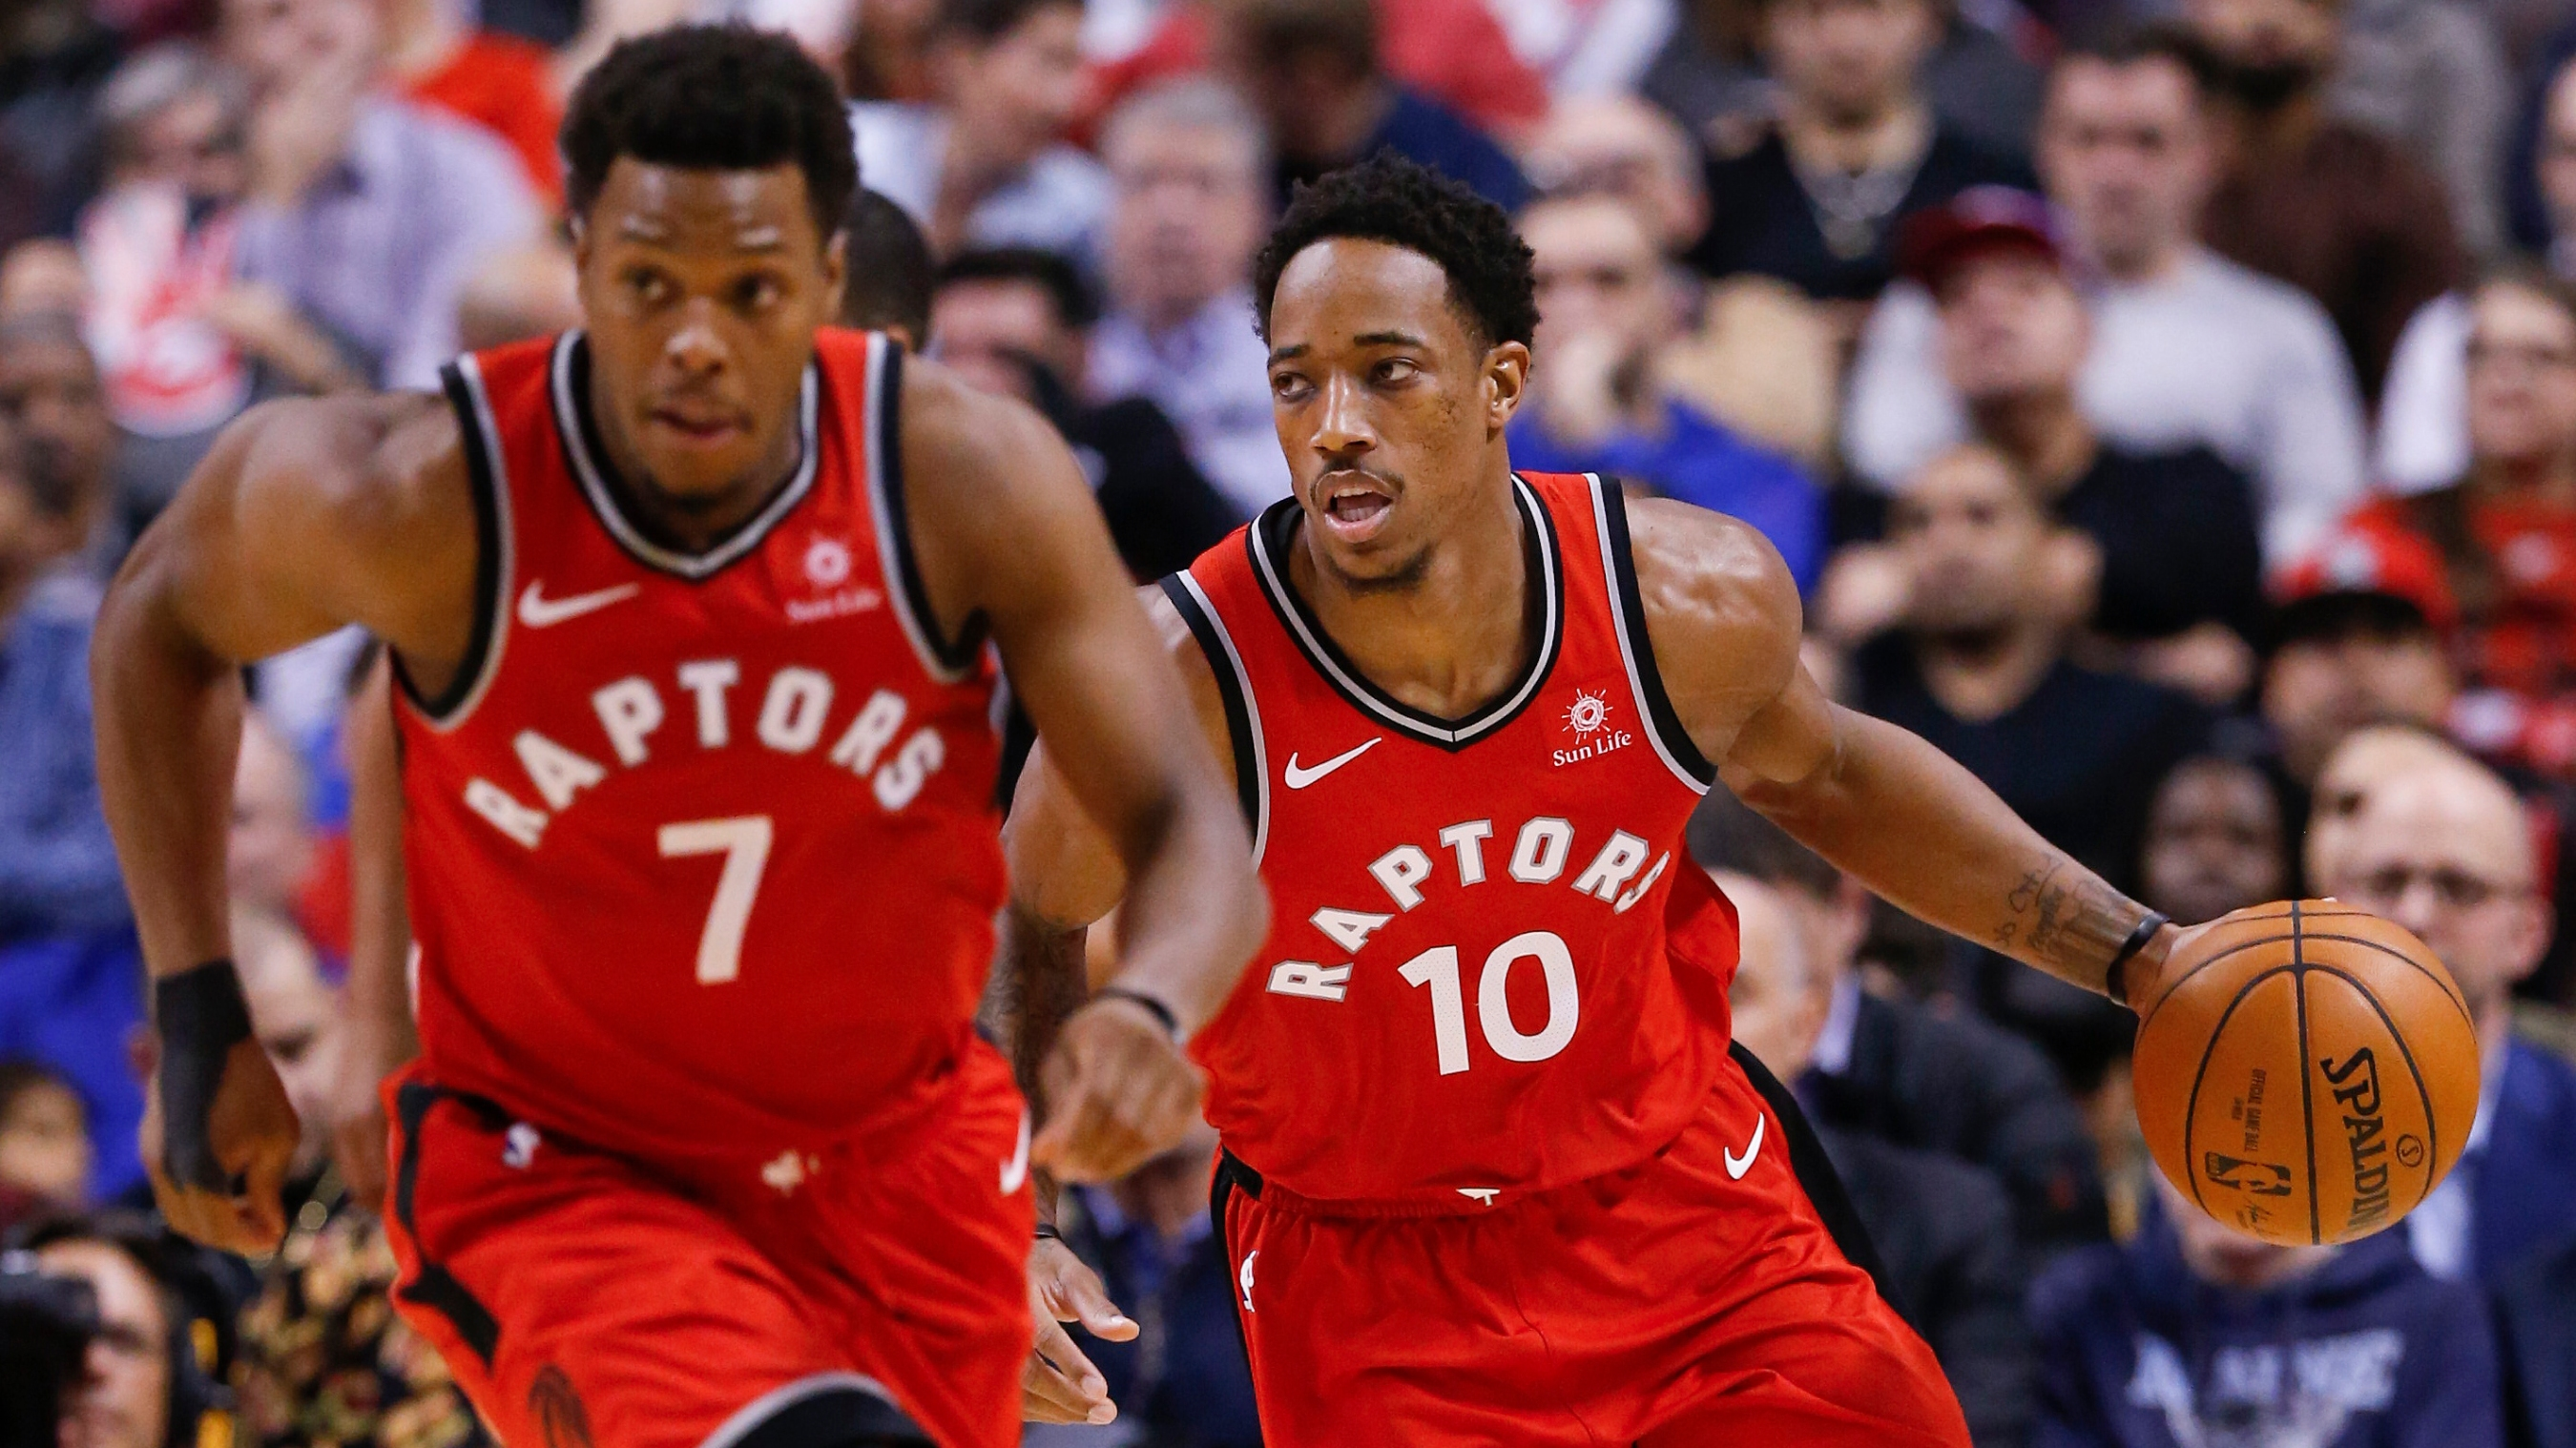 fe89b986f785 DeMar DeRozan and Kyle Lowry  All they want for Christmas is to play in a  game